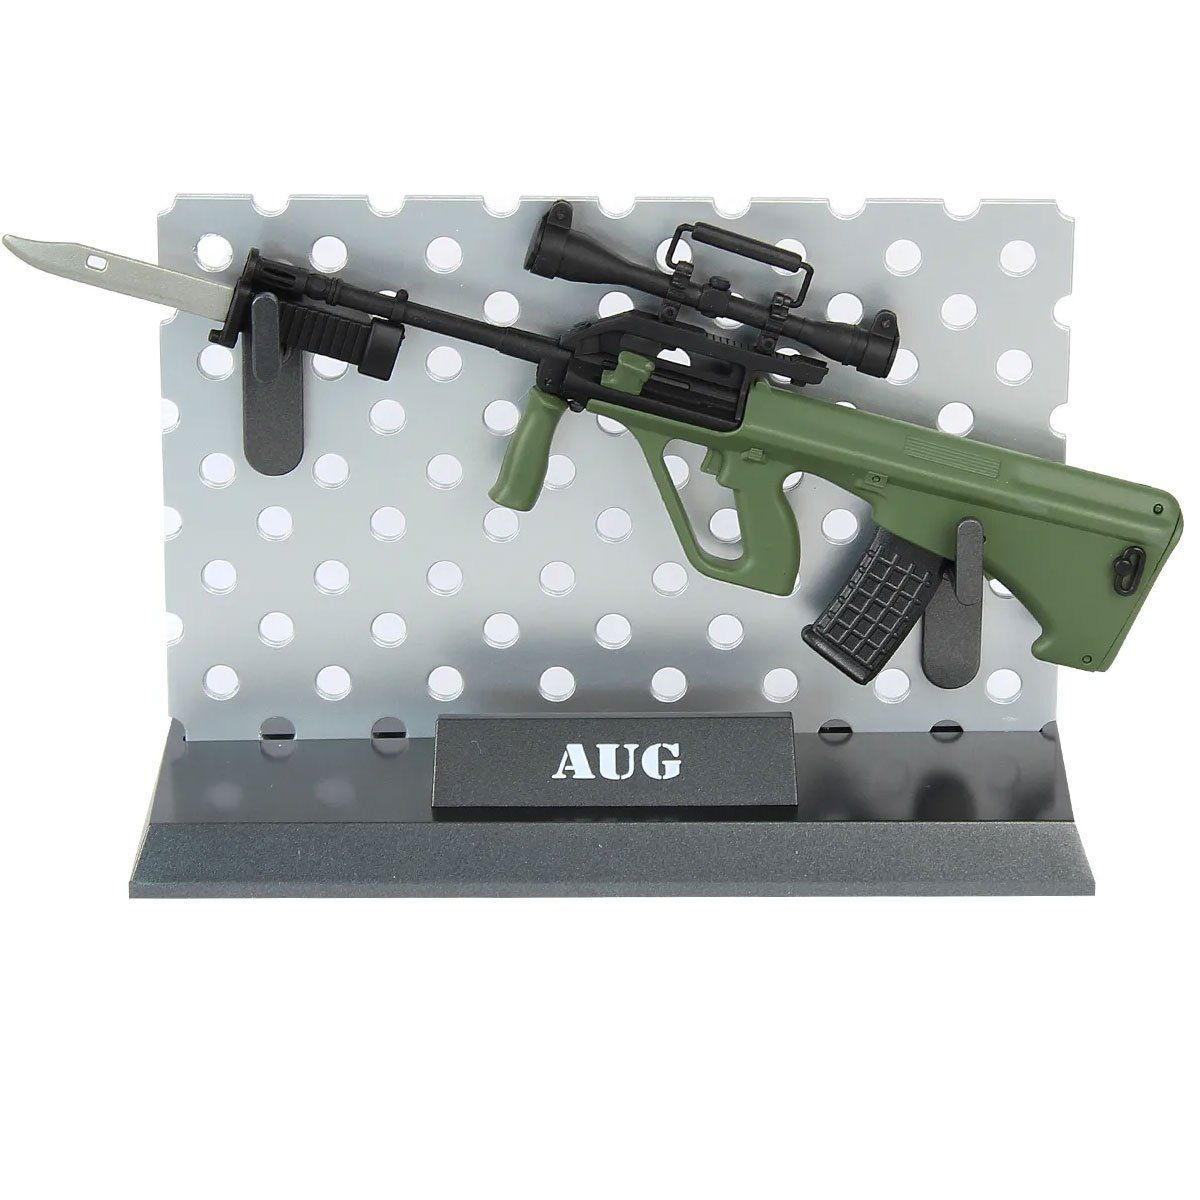 Miniatura de Arma Rifle  Steyr AUG Oliva Com Faca Arsenal Guns